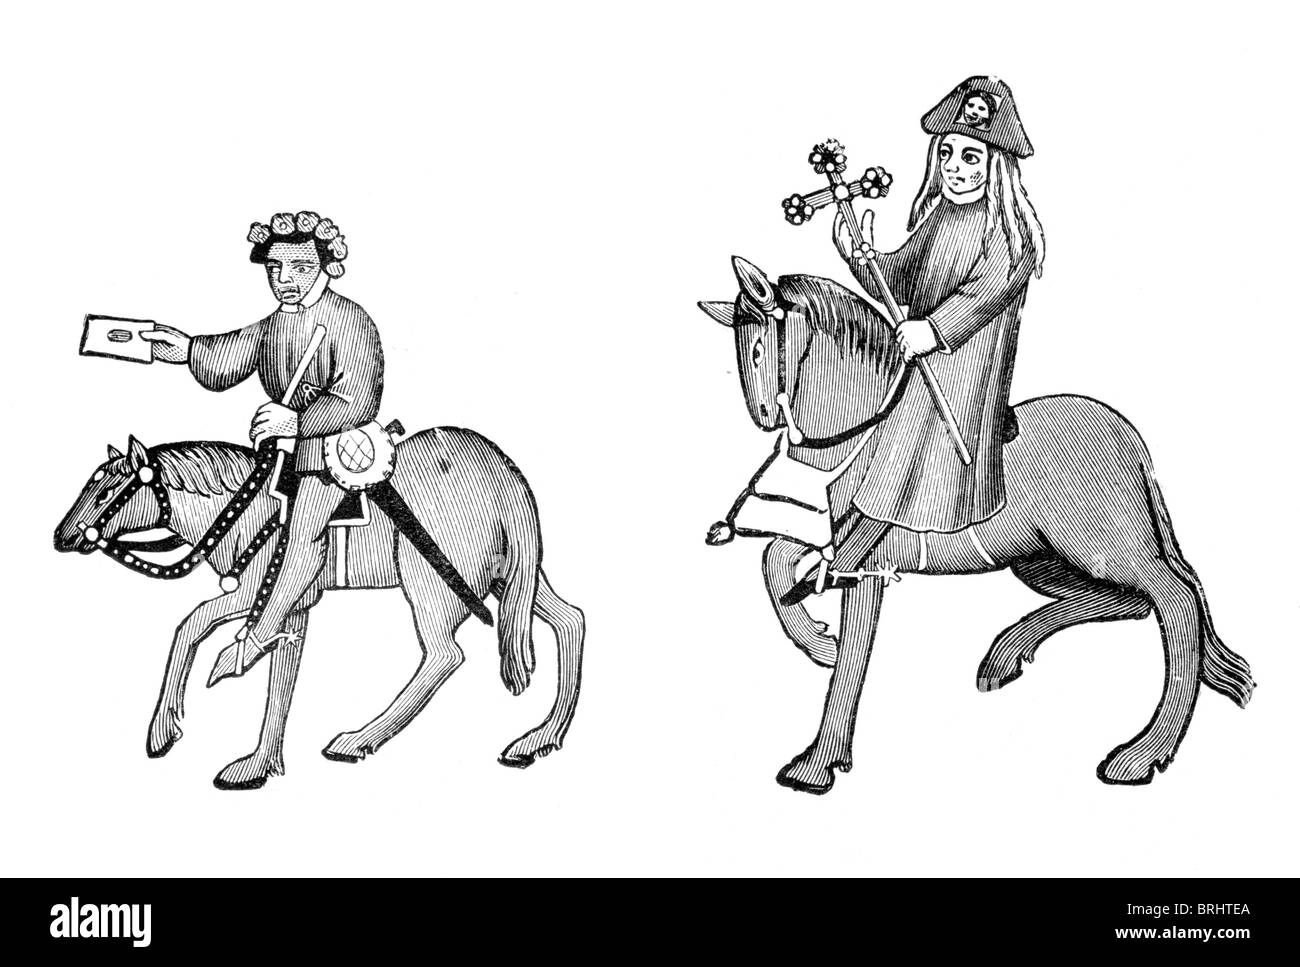 Black and White Illustration; The Summoner and the Pardoner, from the Ellesmere Manuscript of the Canterbury Tales, Stock Photo